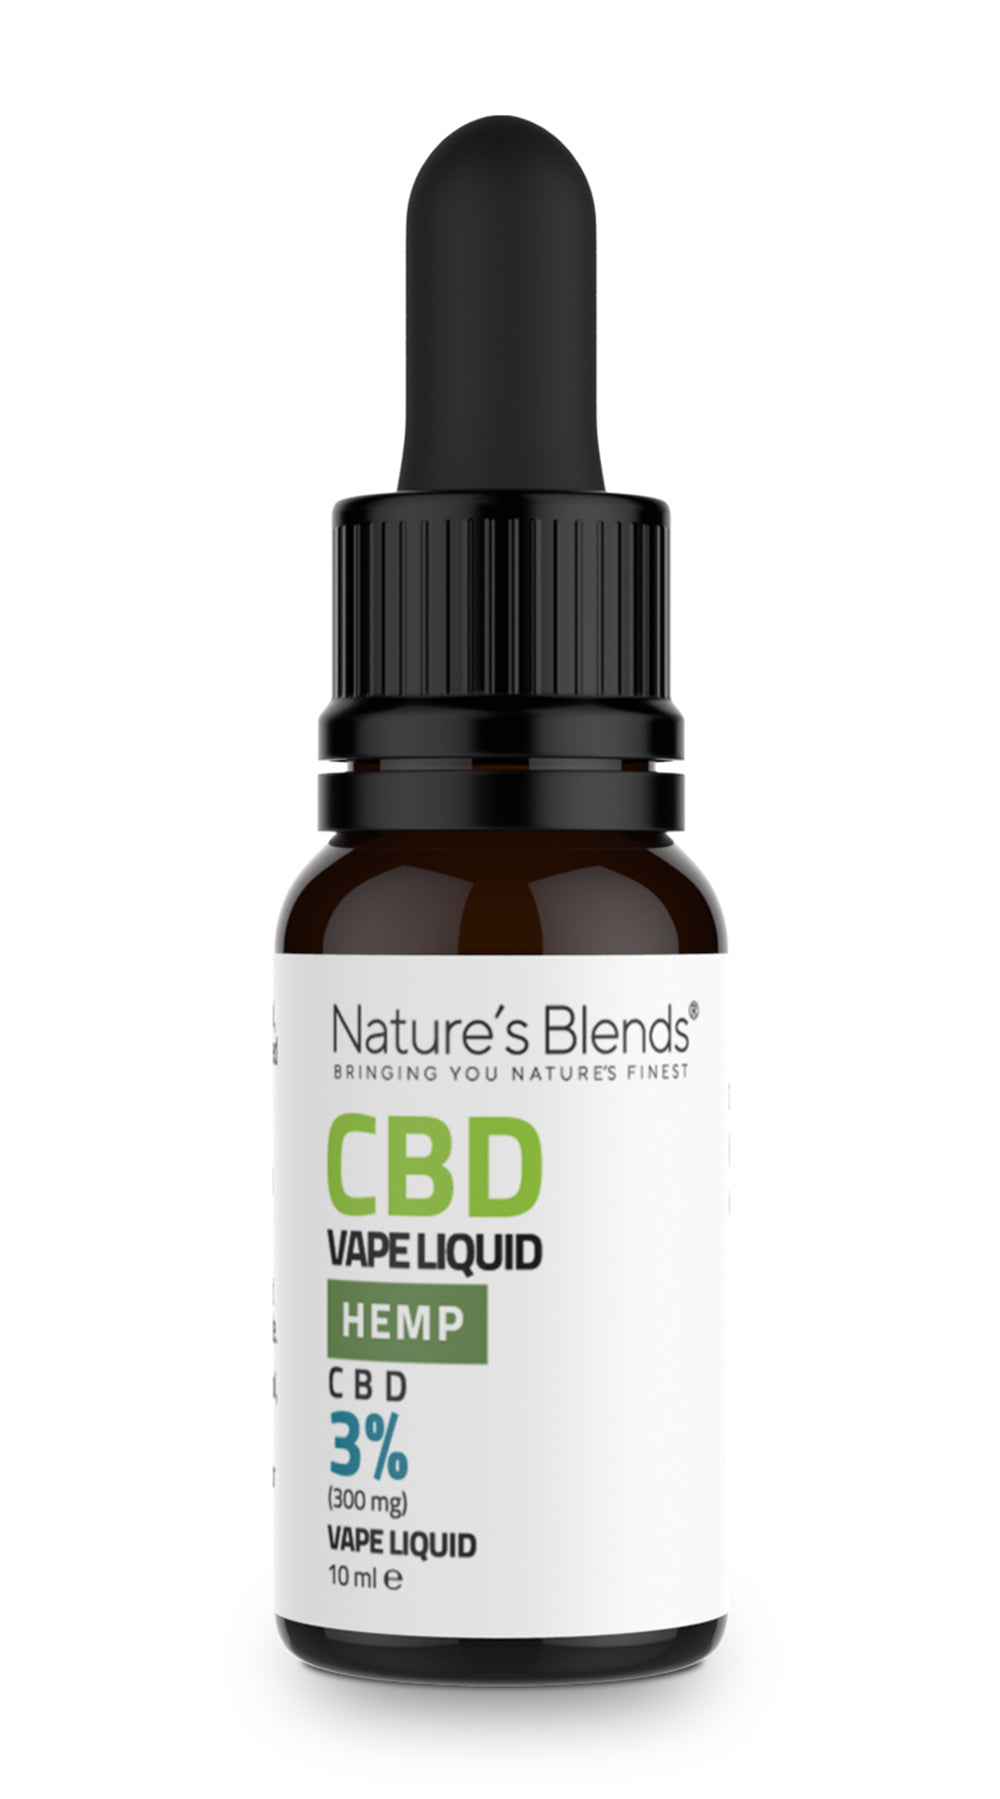 A 10ml bottle of 300mg cbd vape hemp flavour by natures blends